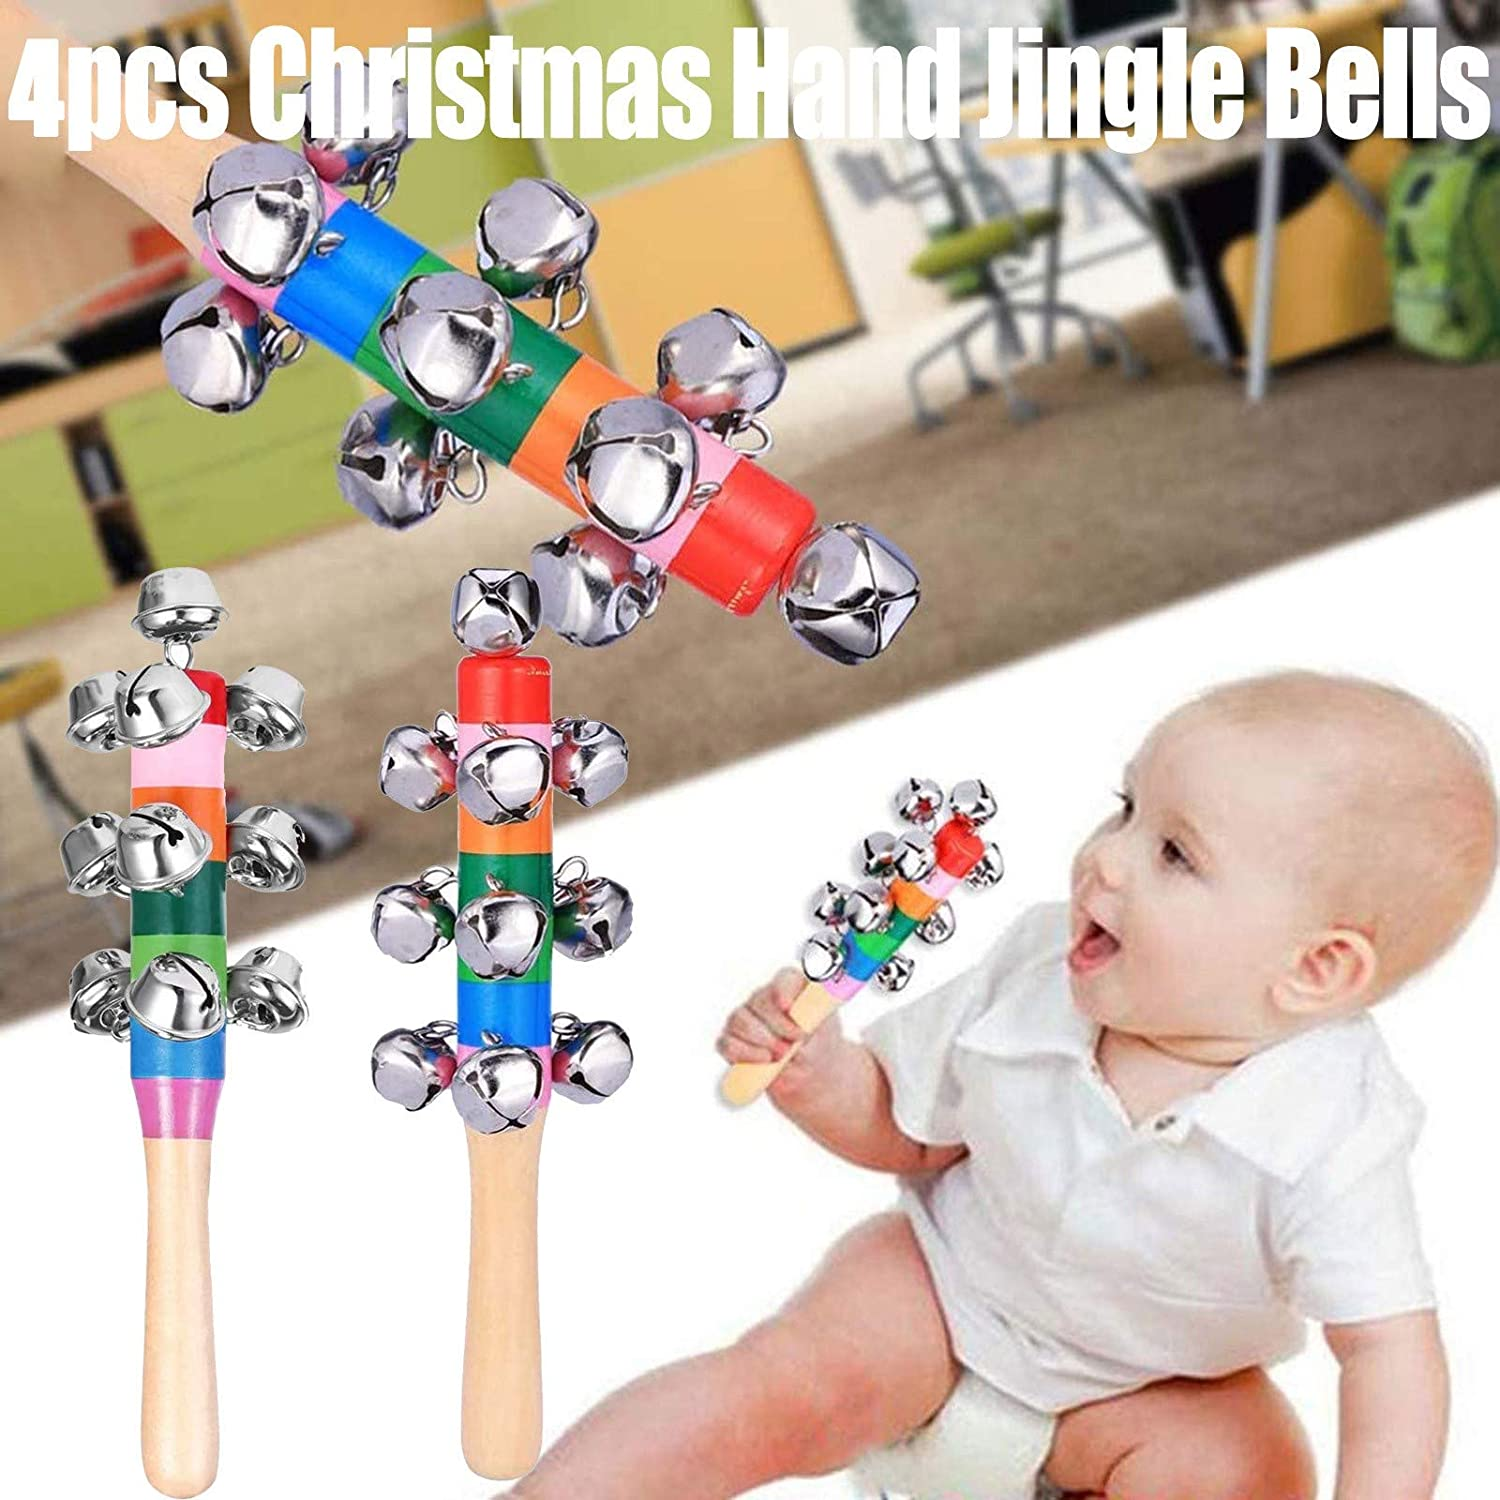 beetleNew 1-10PC Christmas Hand Jingle Bells Hand Sleigh Bells Musical Instrument Toy Wooden Handle School Desk Ringbell for Holiday Wedding Babies Nickel Plated Bells Xmas Decoration